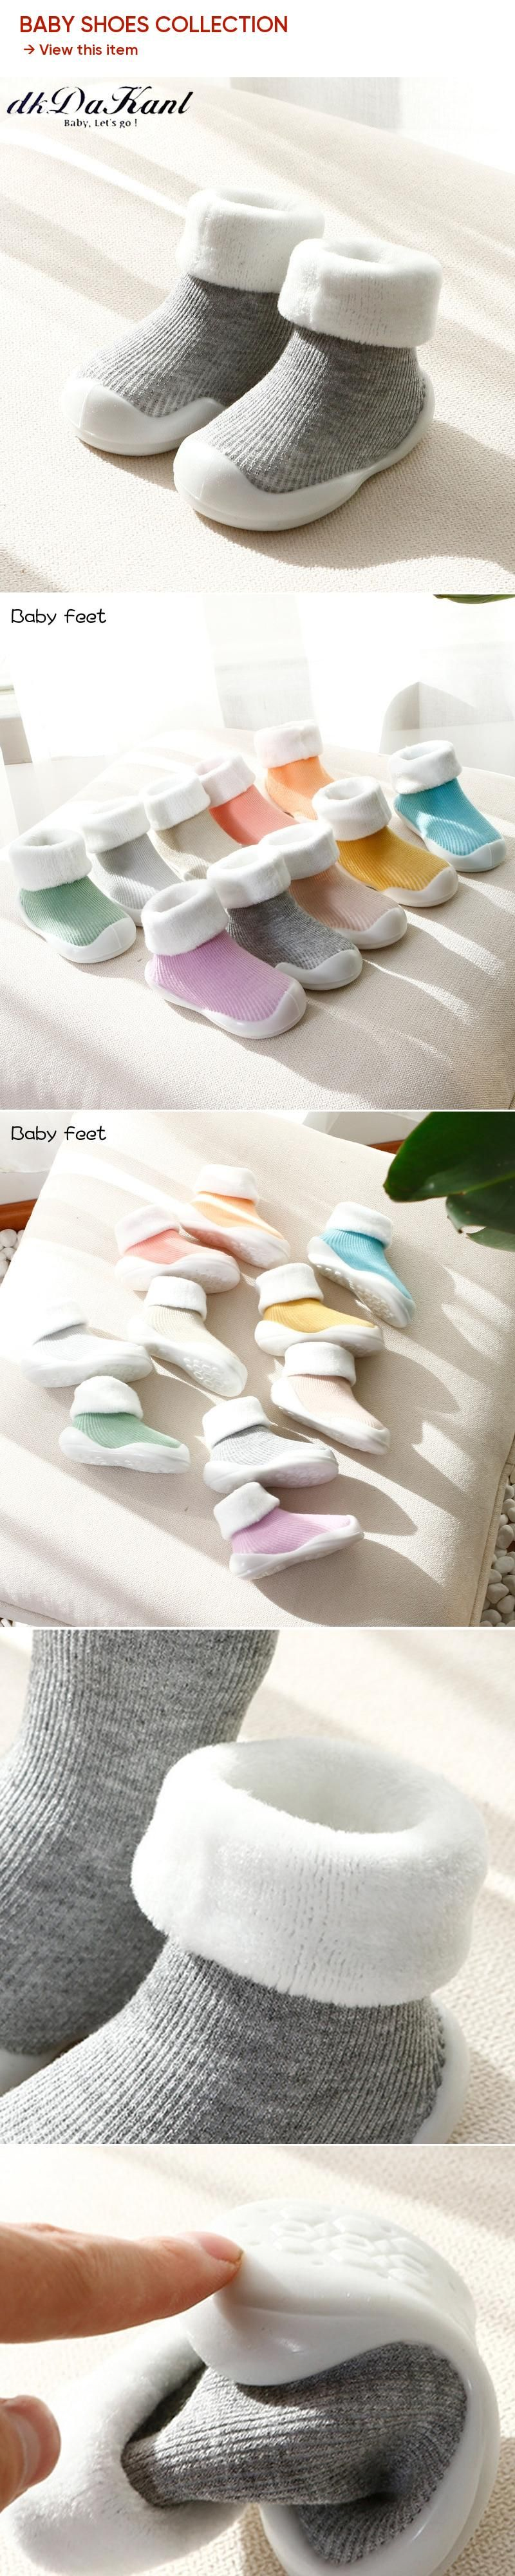 dkDaKanl 1 pair solid anti slip rubber sole shoes for baby Warm terry curling new born shoes infant Pink baby girl shoes 1 year